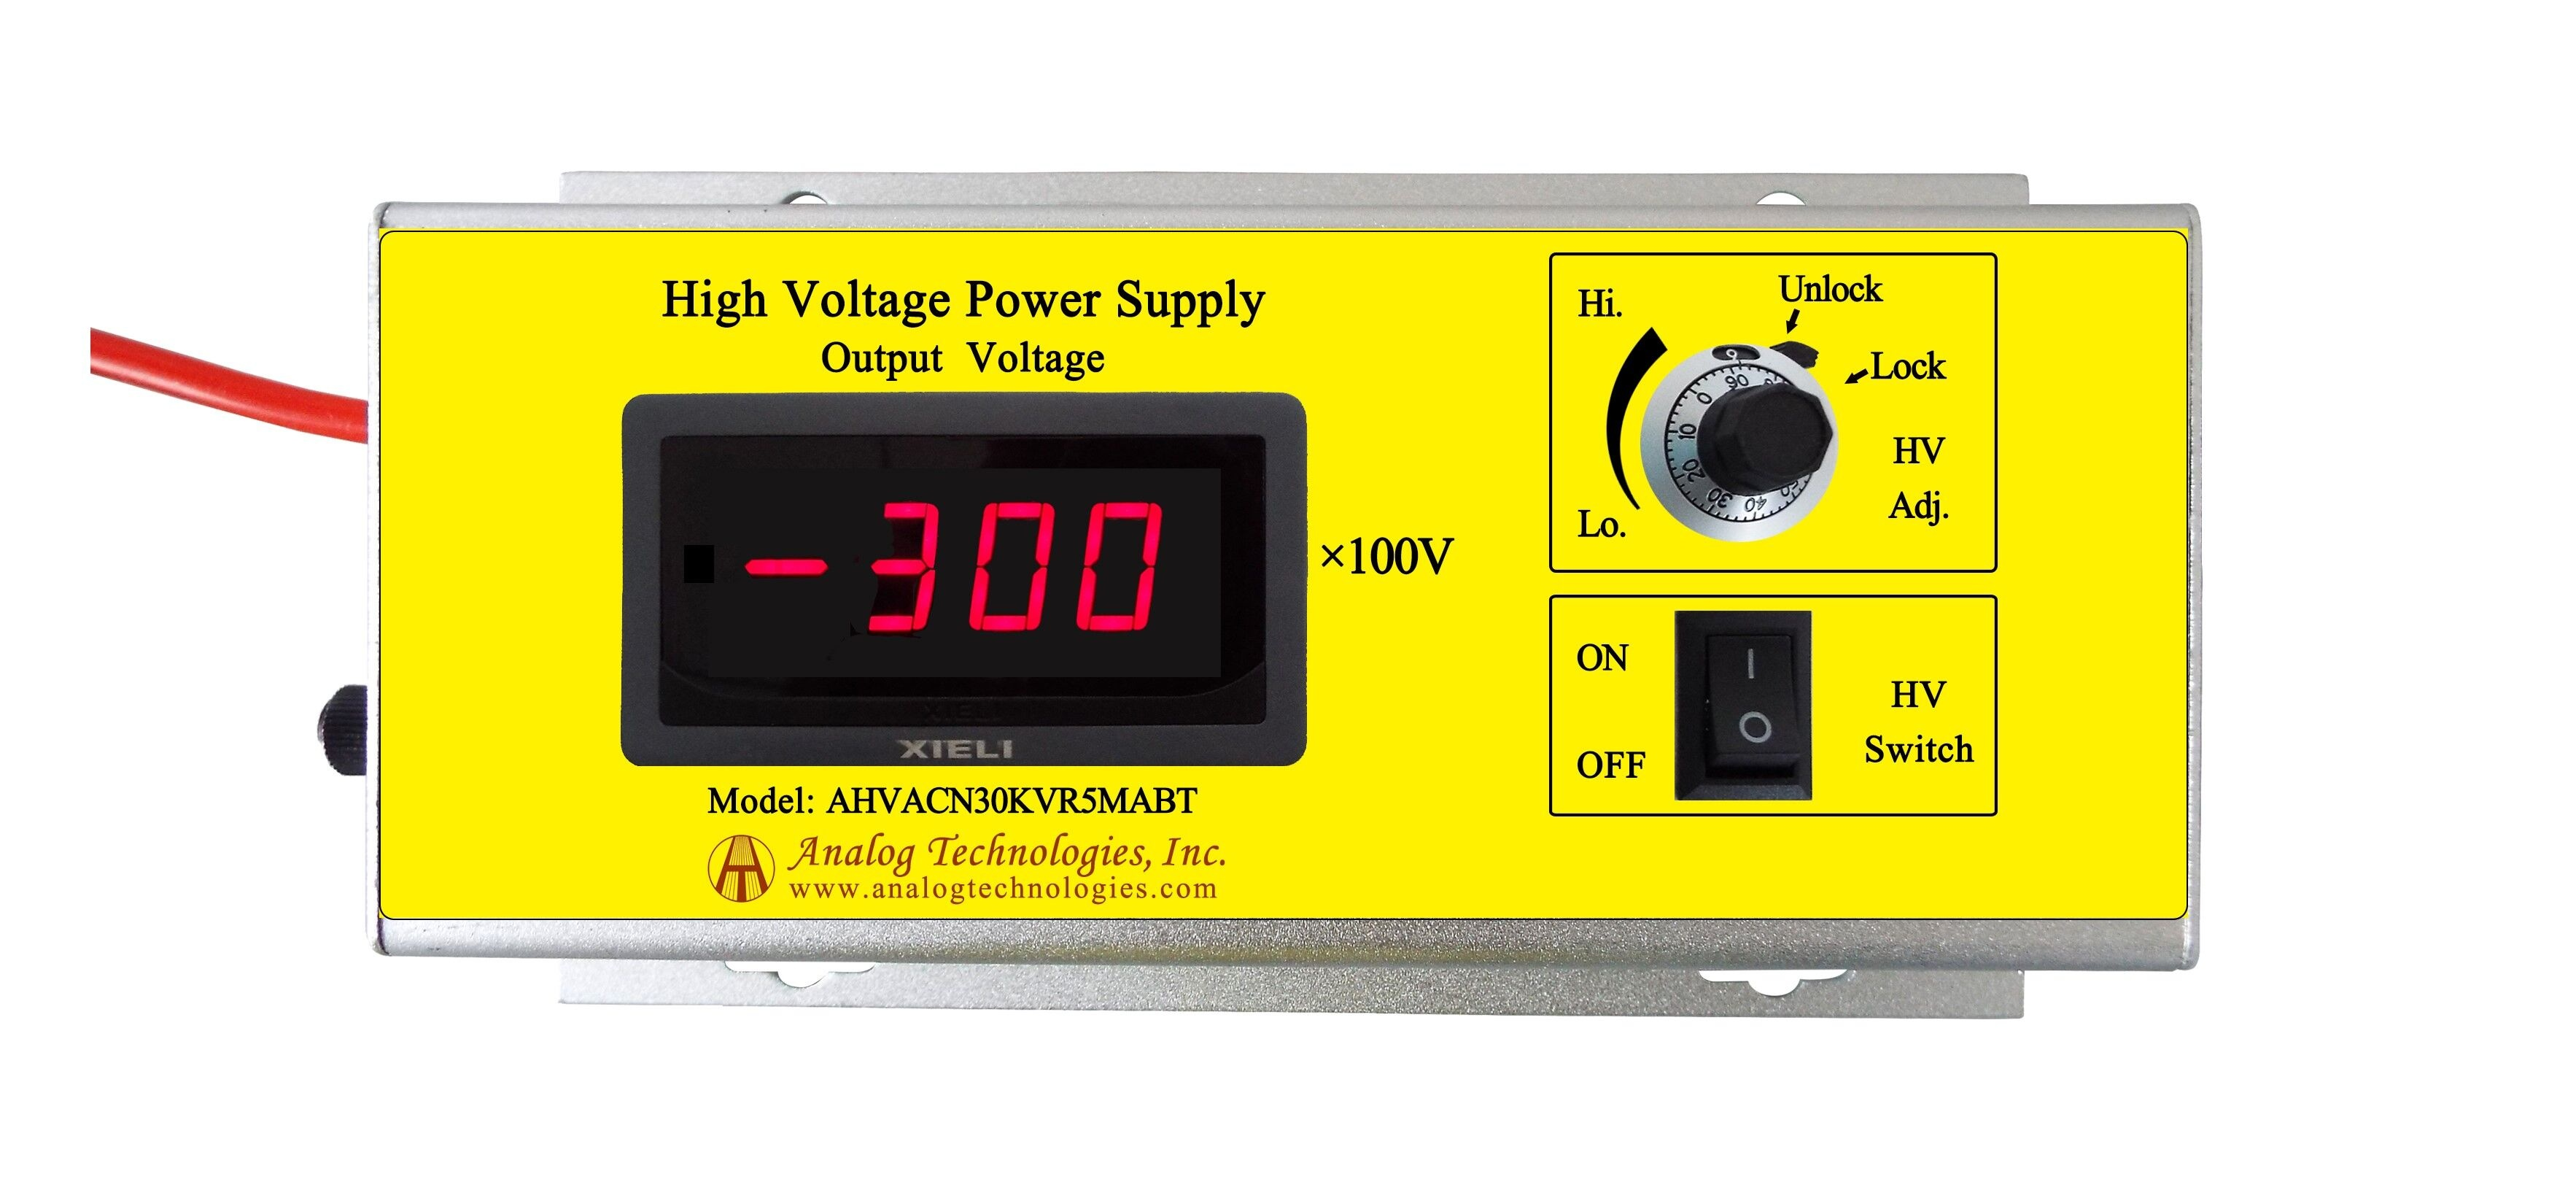 What Household Electronics Contain A High Voltage Power Supply 20kv Dc Flyback Circuit They Convert Low Into Voltages With Efficiency The Input Is 5v 12v24v And 30v Output Positive Negative